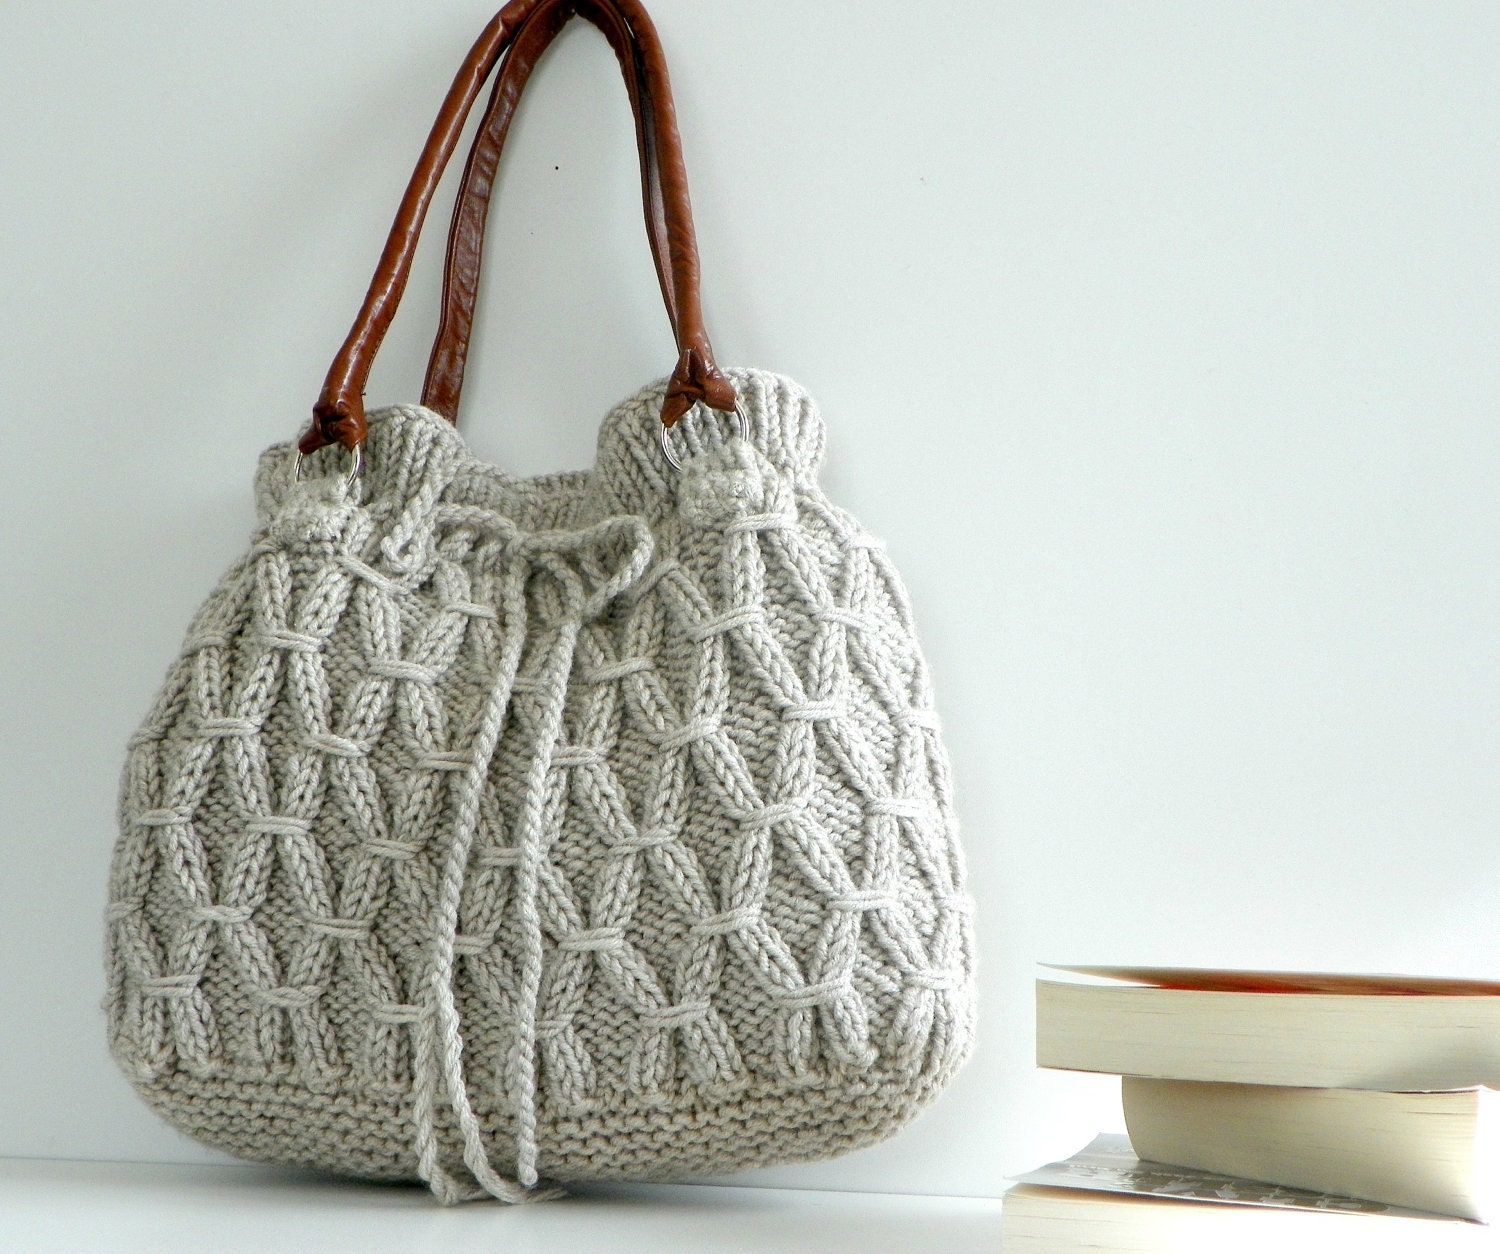 Knitting Bag : Bag NzLbags Beige-Ecru Knitted Bag Handbag Shoulder by NzLbags